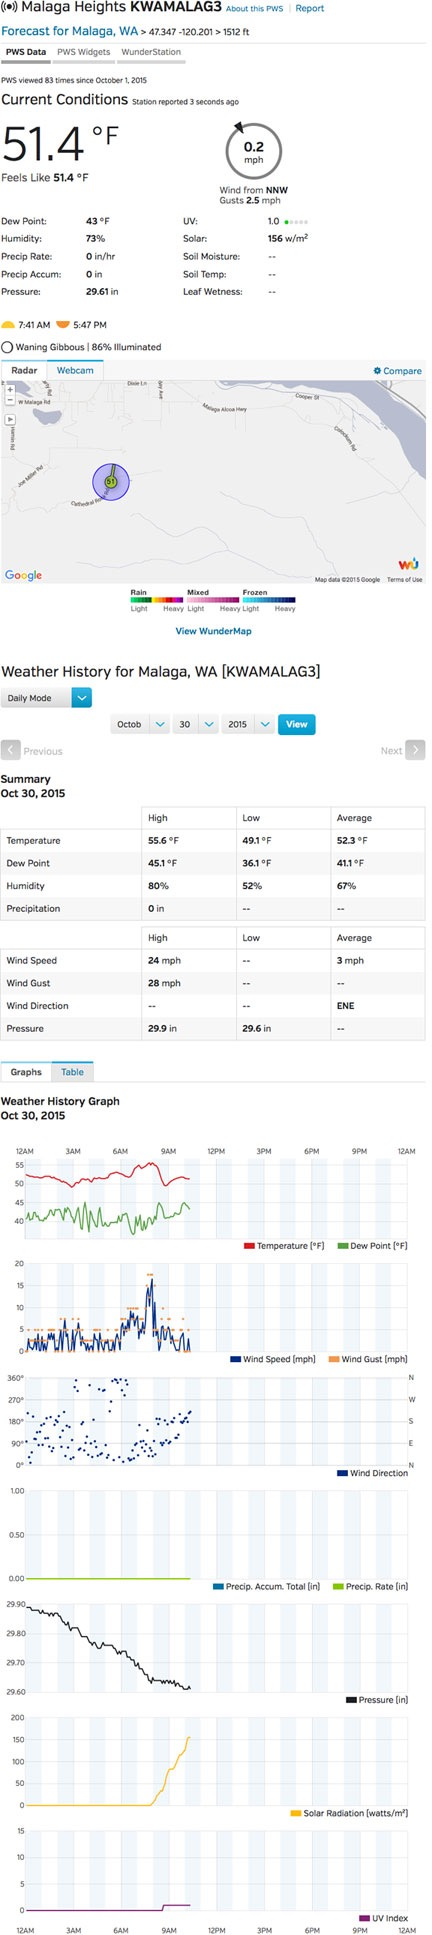 Weather Station Data